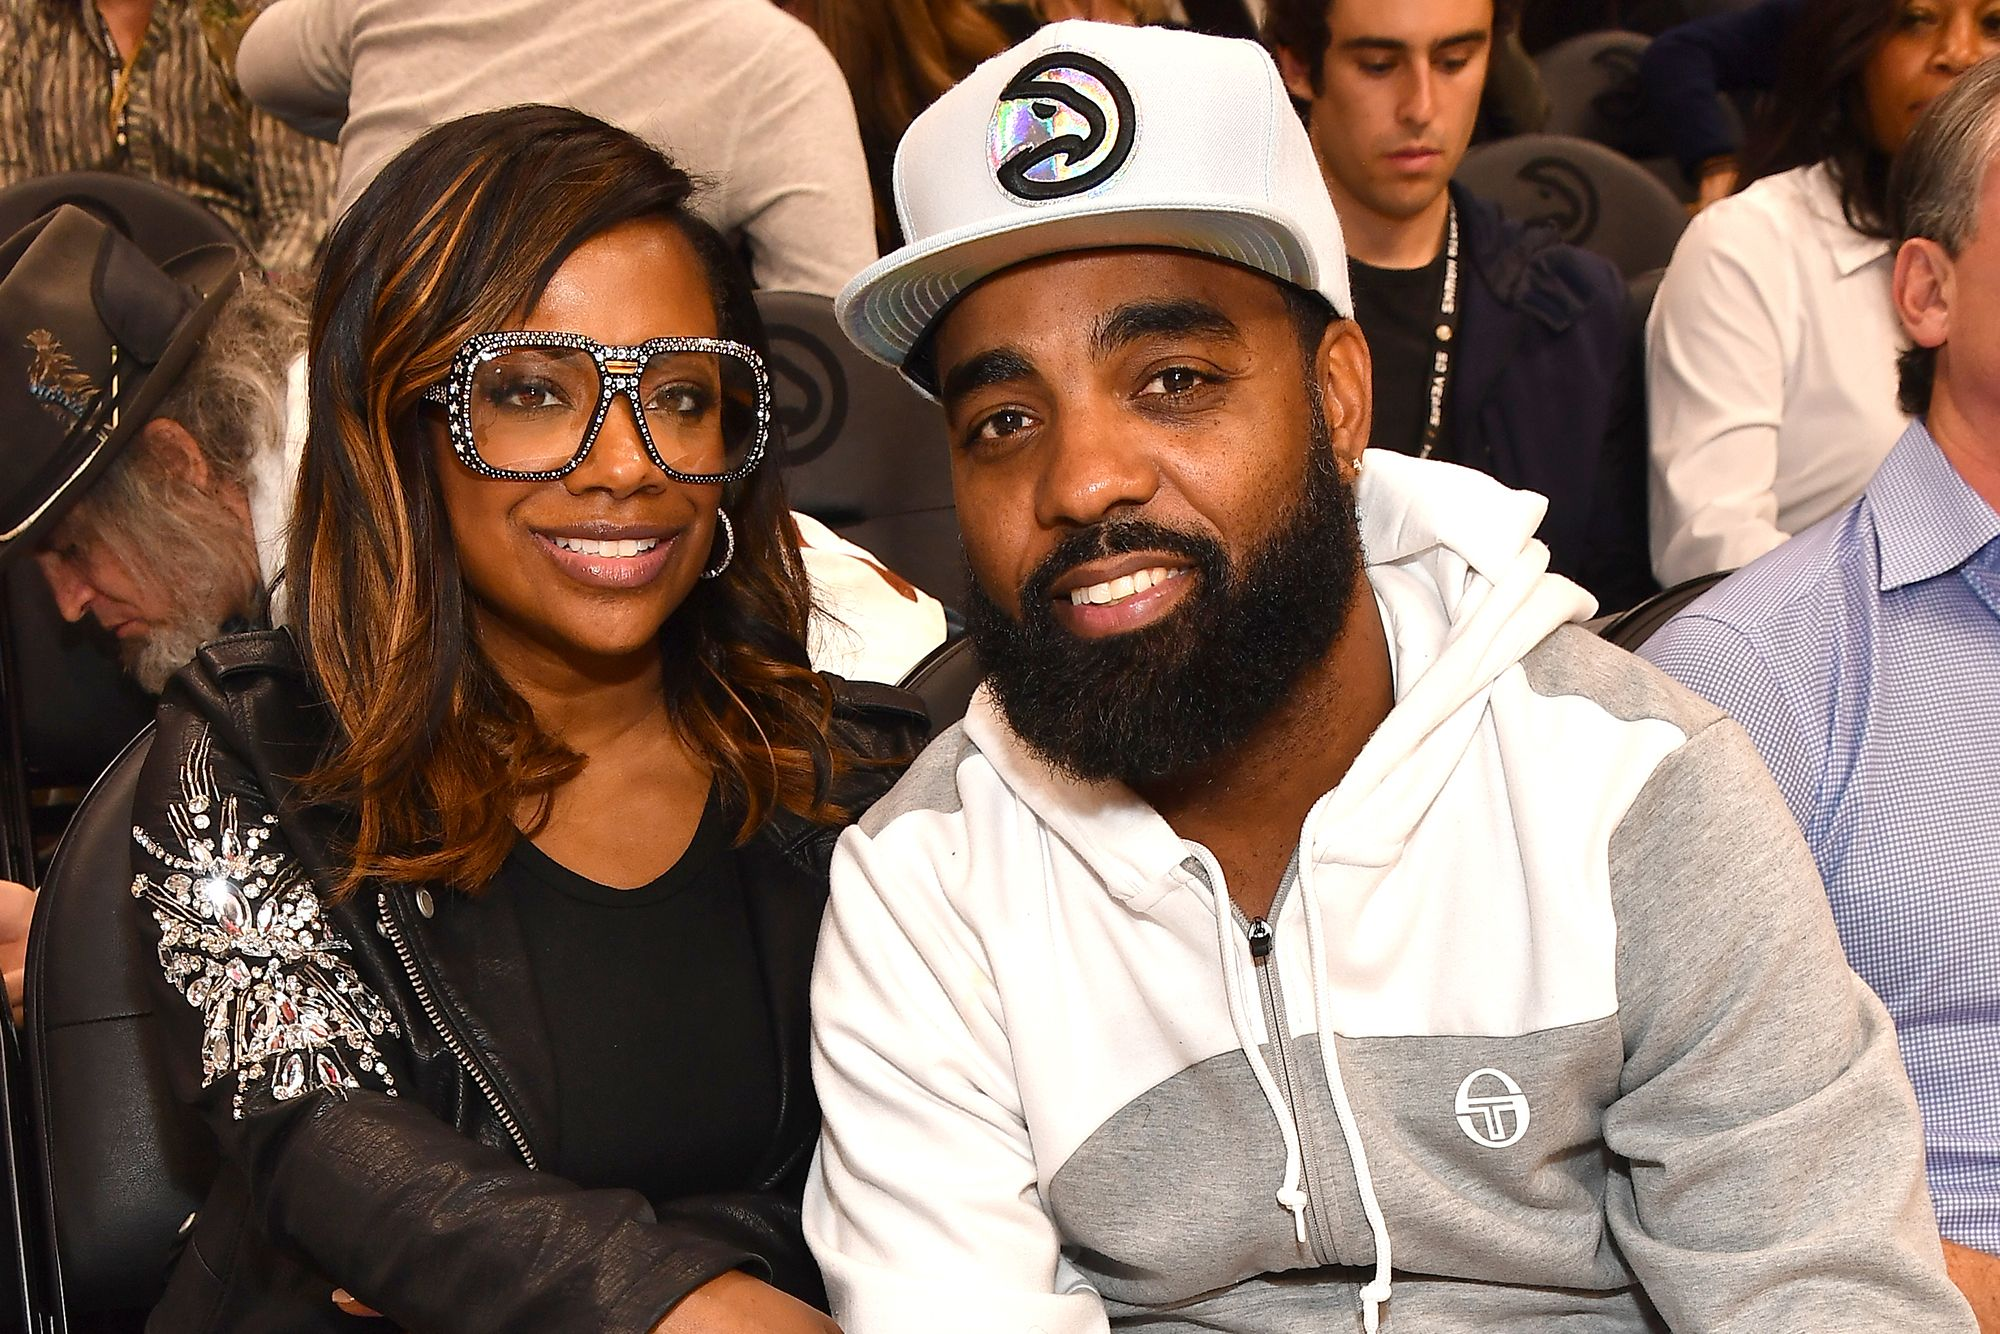 Kandi Burruss Shares A Funny Photo With Todd Tucker And Their Son, Ace – See The Family Pic That Will Have Todd's Homies Talking!